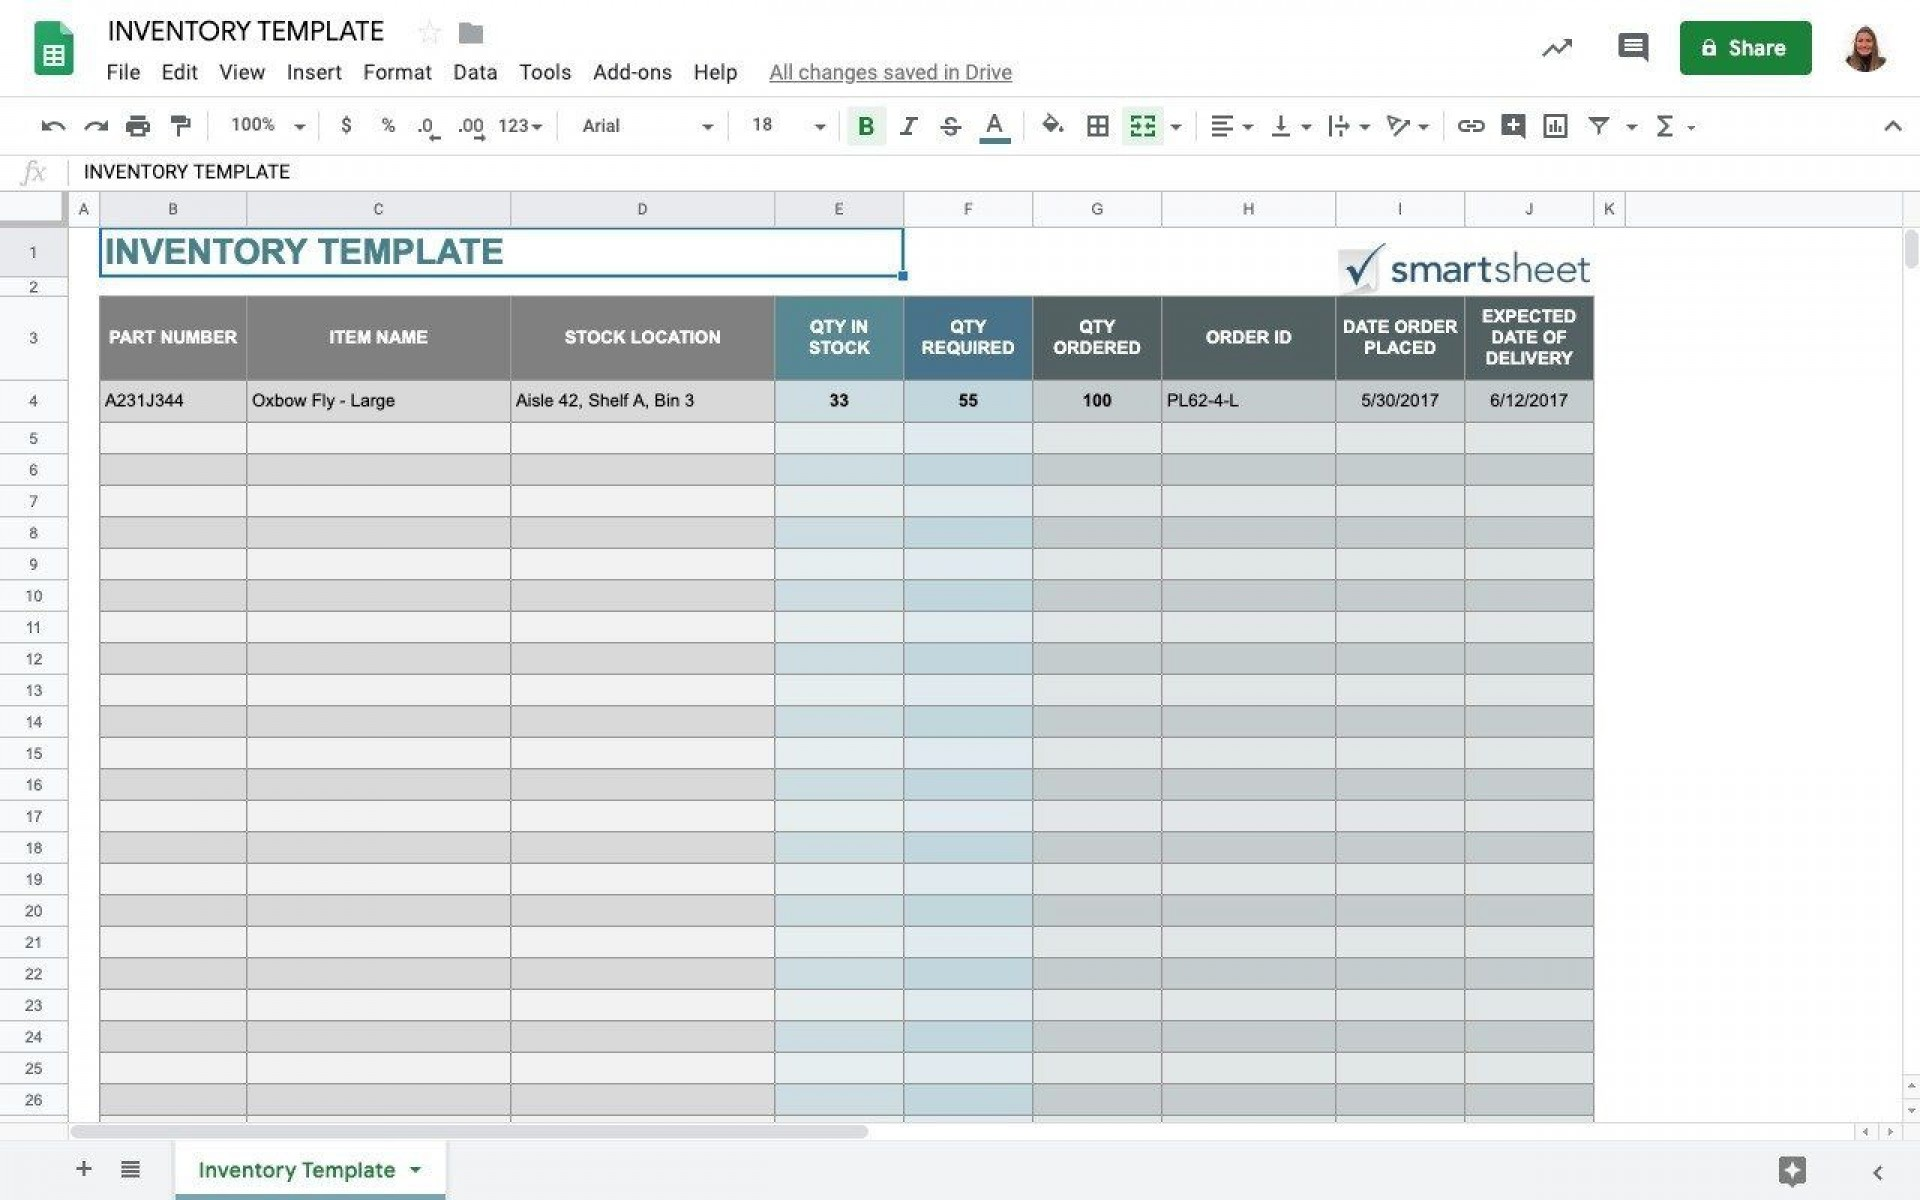 009 Impressive Small Busines Inventory Spreadsheet Template Concept  Pdf1920